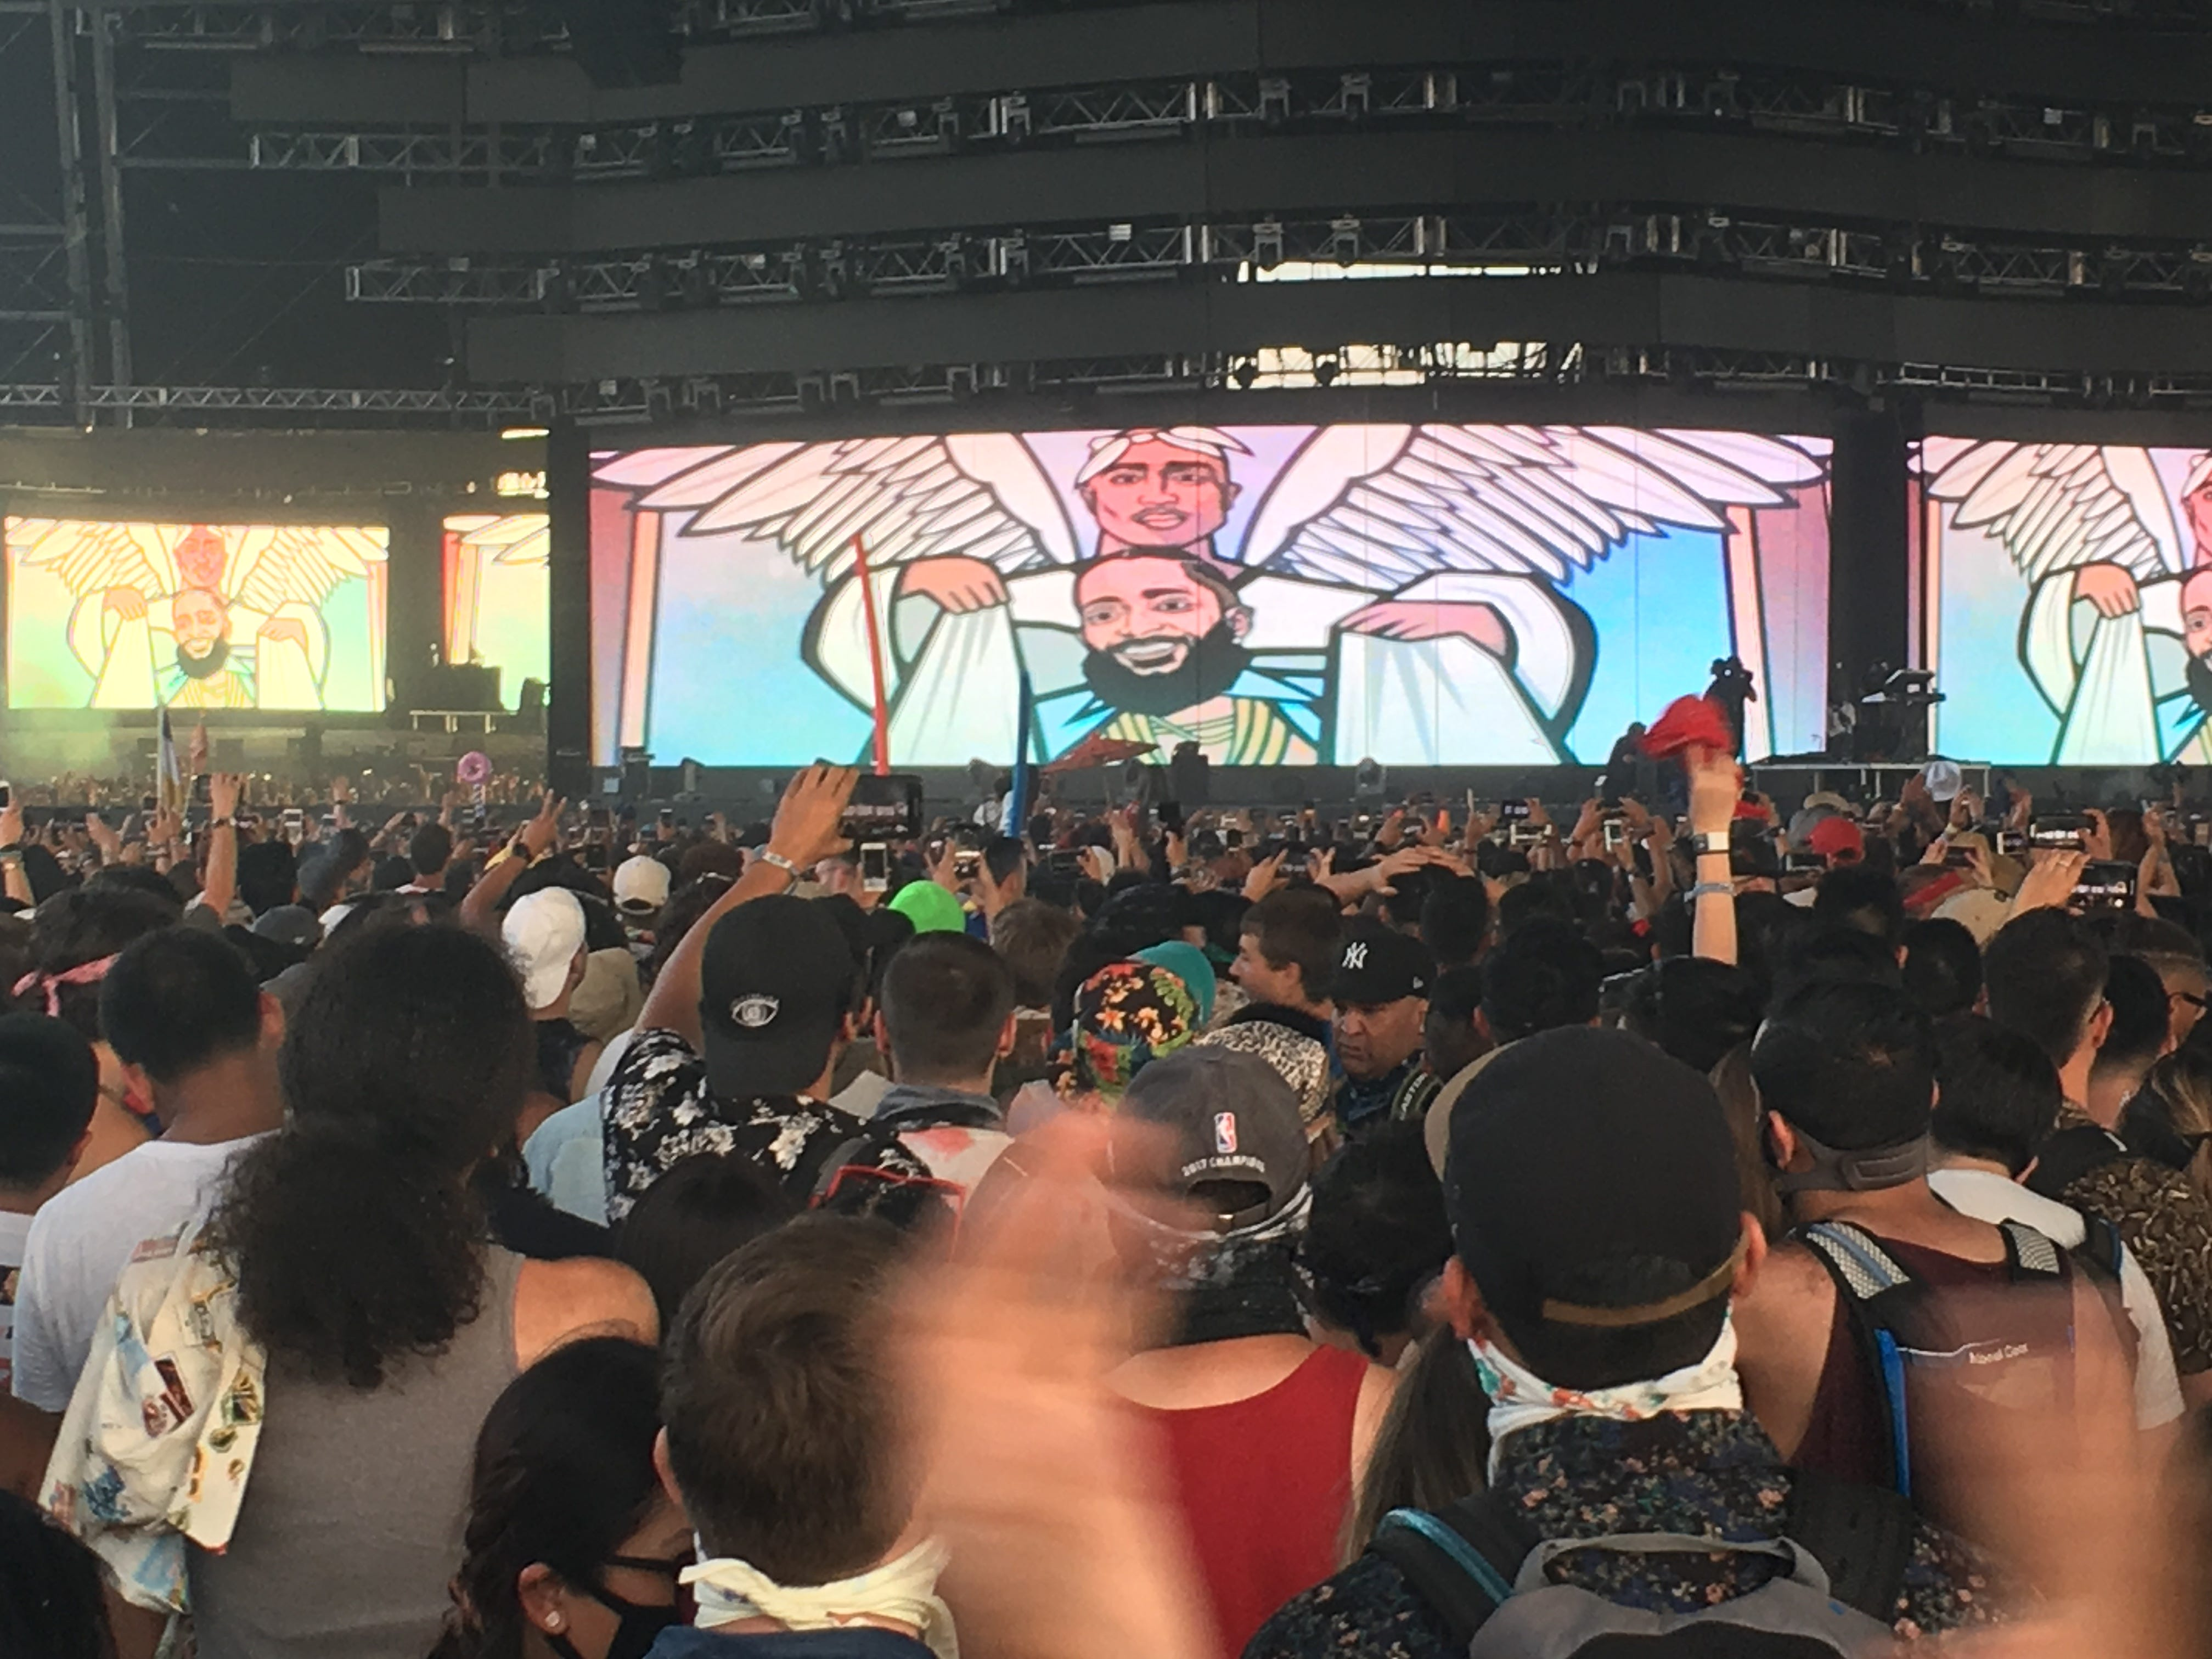 During the YG show at Coachella on Sunday, an image of Nipsey Hussle floating up to heaven and being greeted there by Tupac, was shown on the big screen.